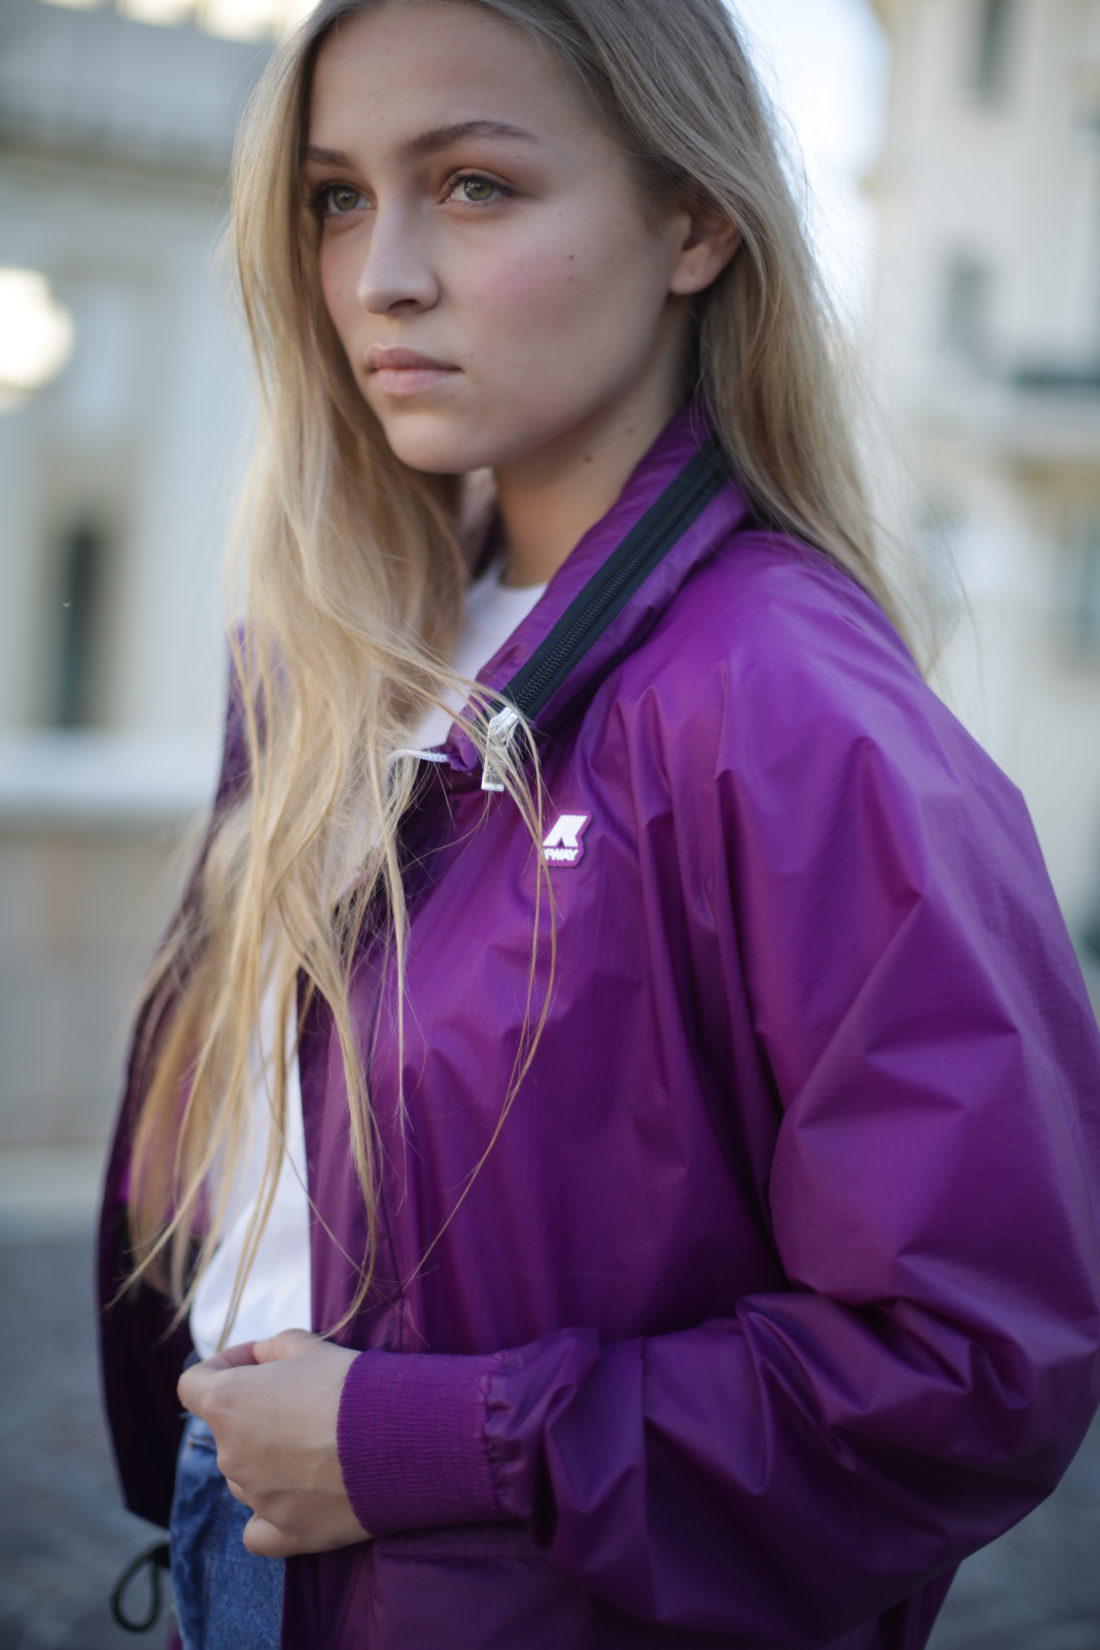 purple jacket kway cheveux longs blonds coiffure studio texture beachhair